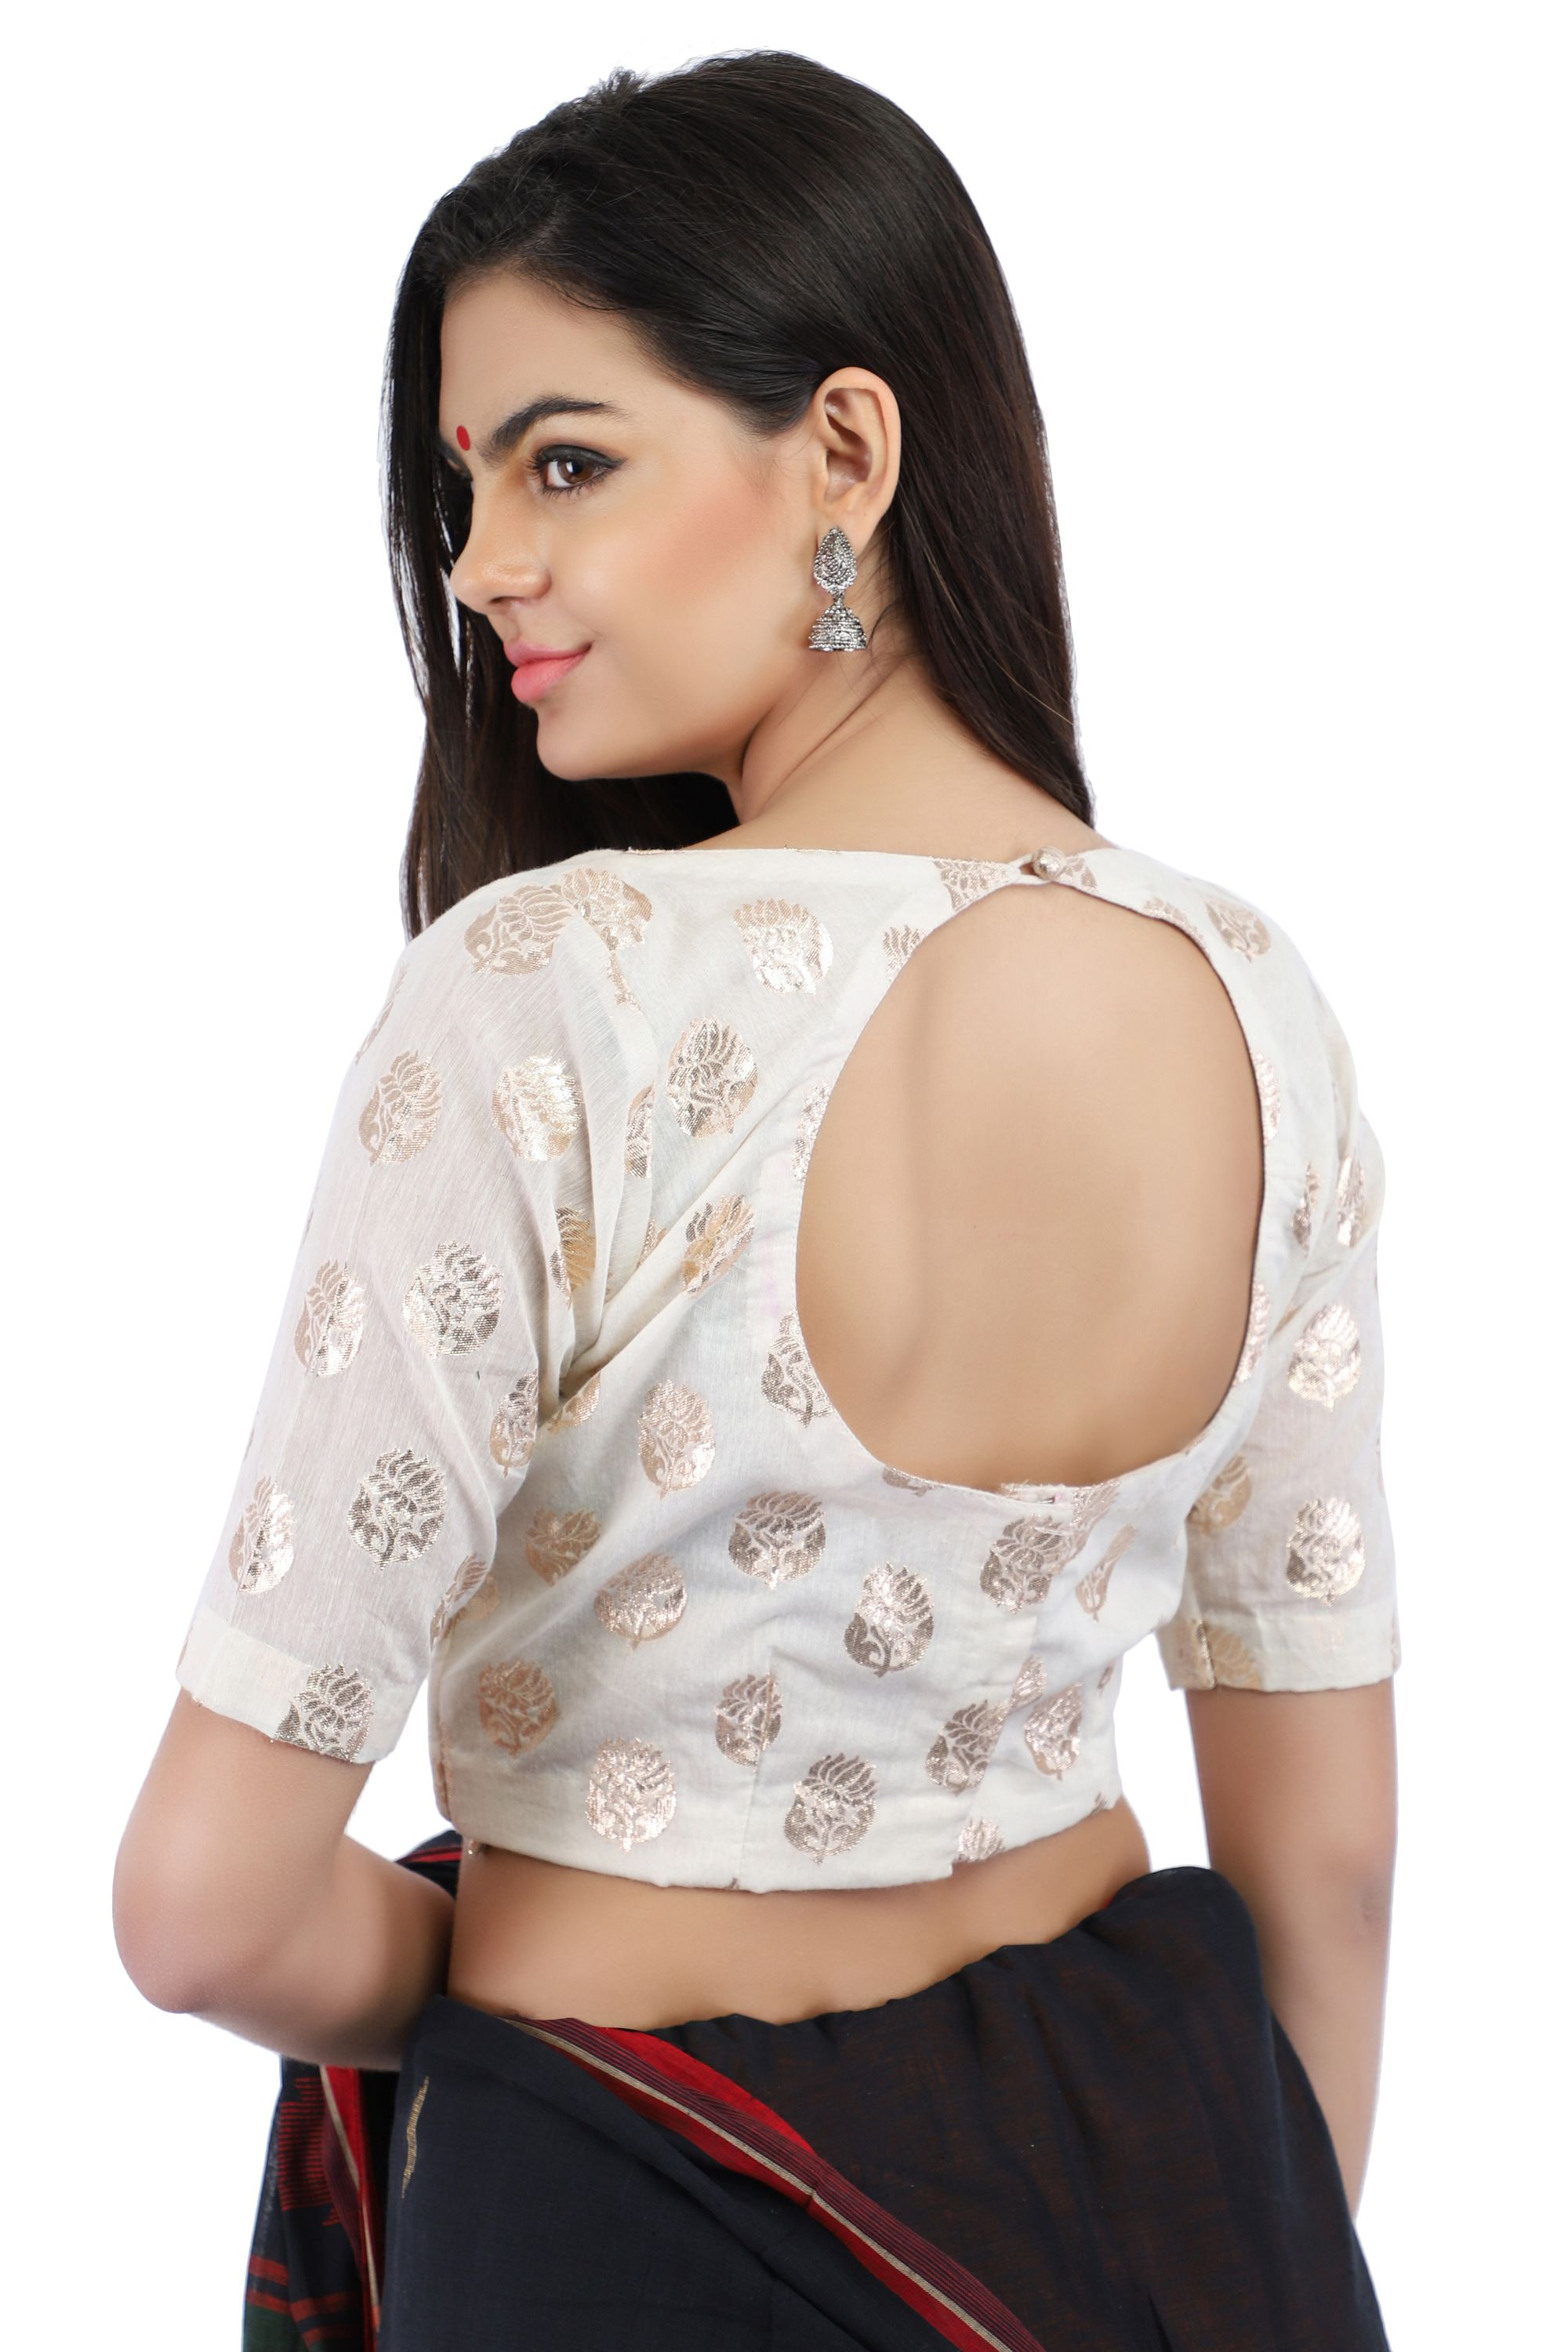 Handloom Banarasi Chanderi Brocade Non-Padded Blouse in White With Hook Closure on Back 2